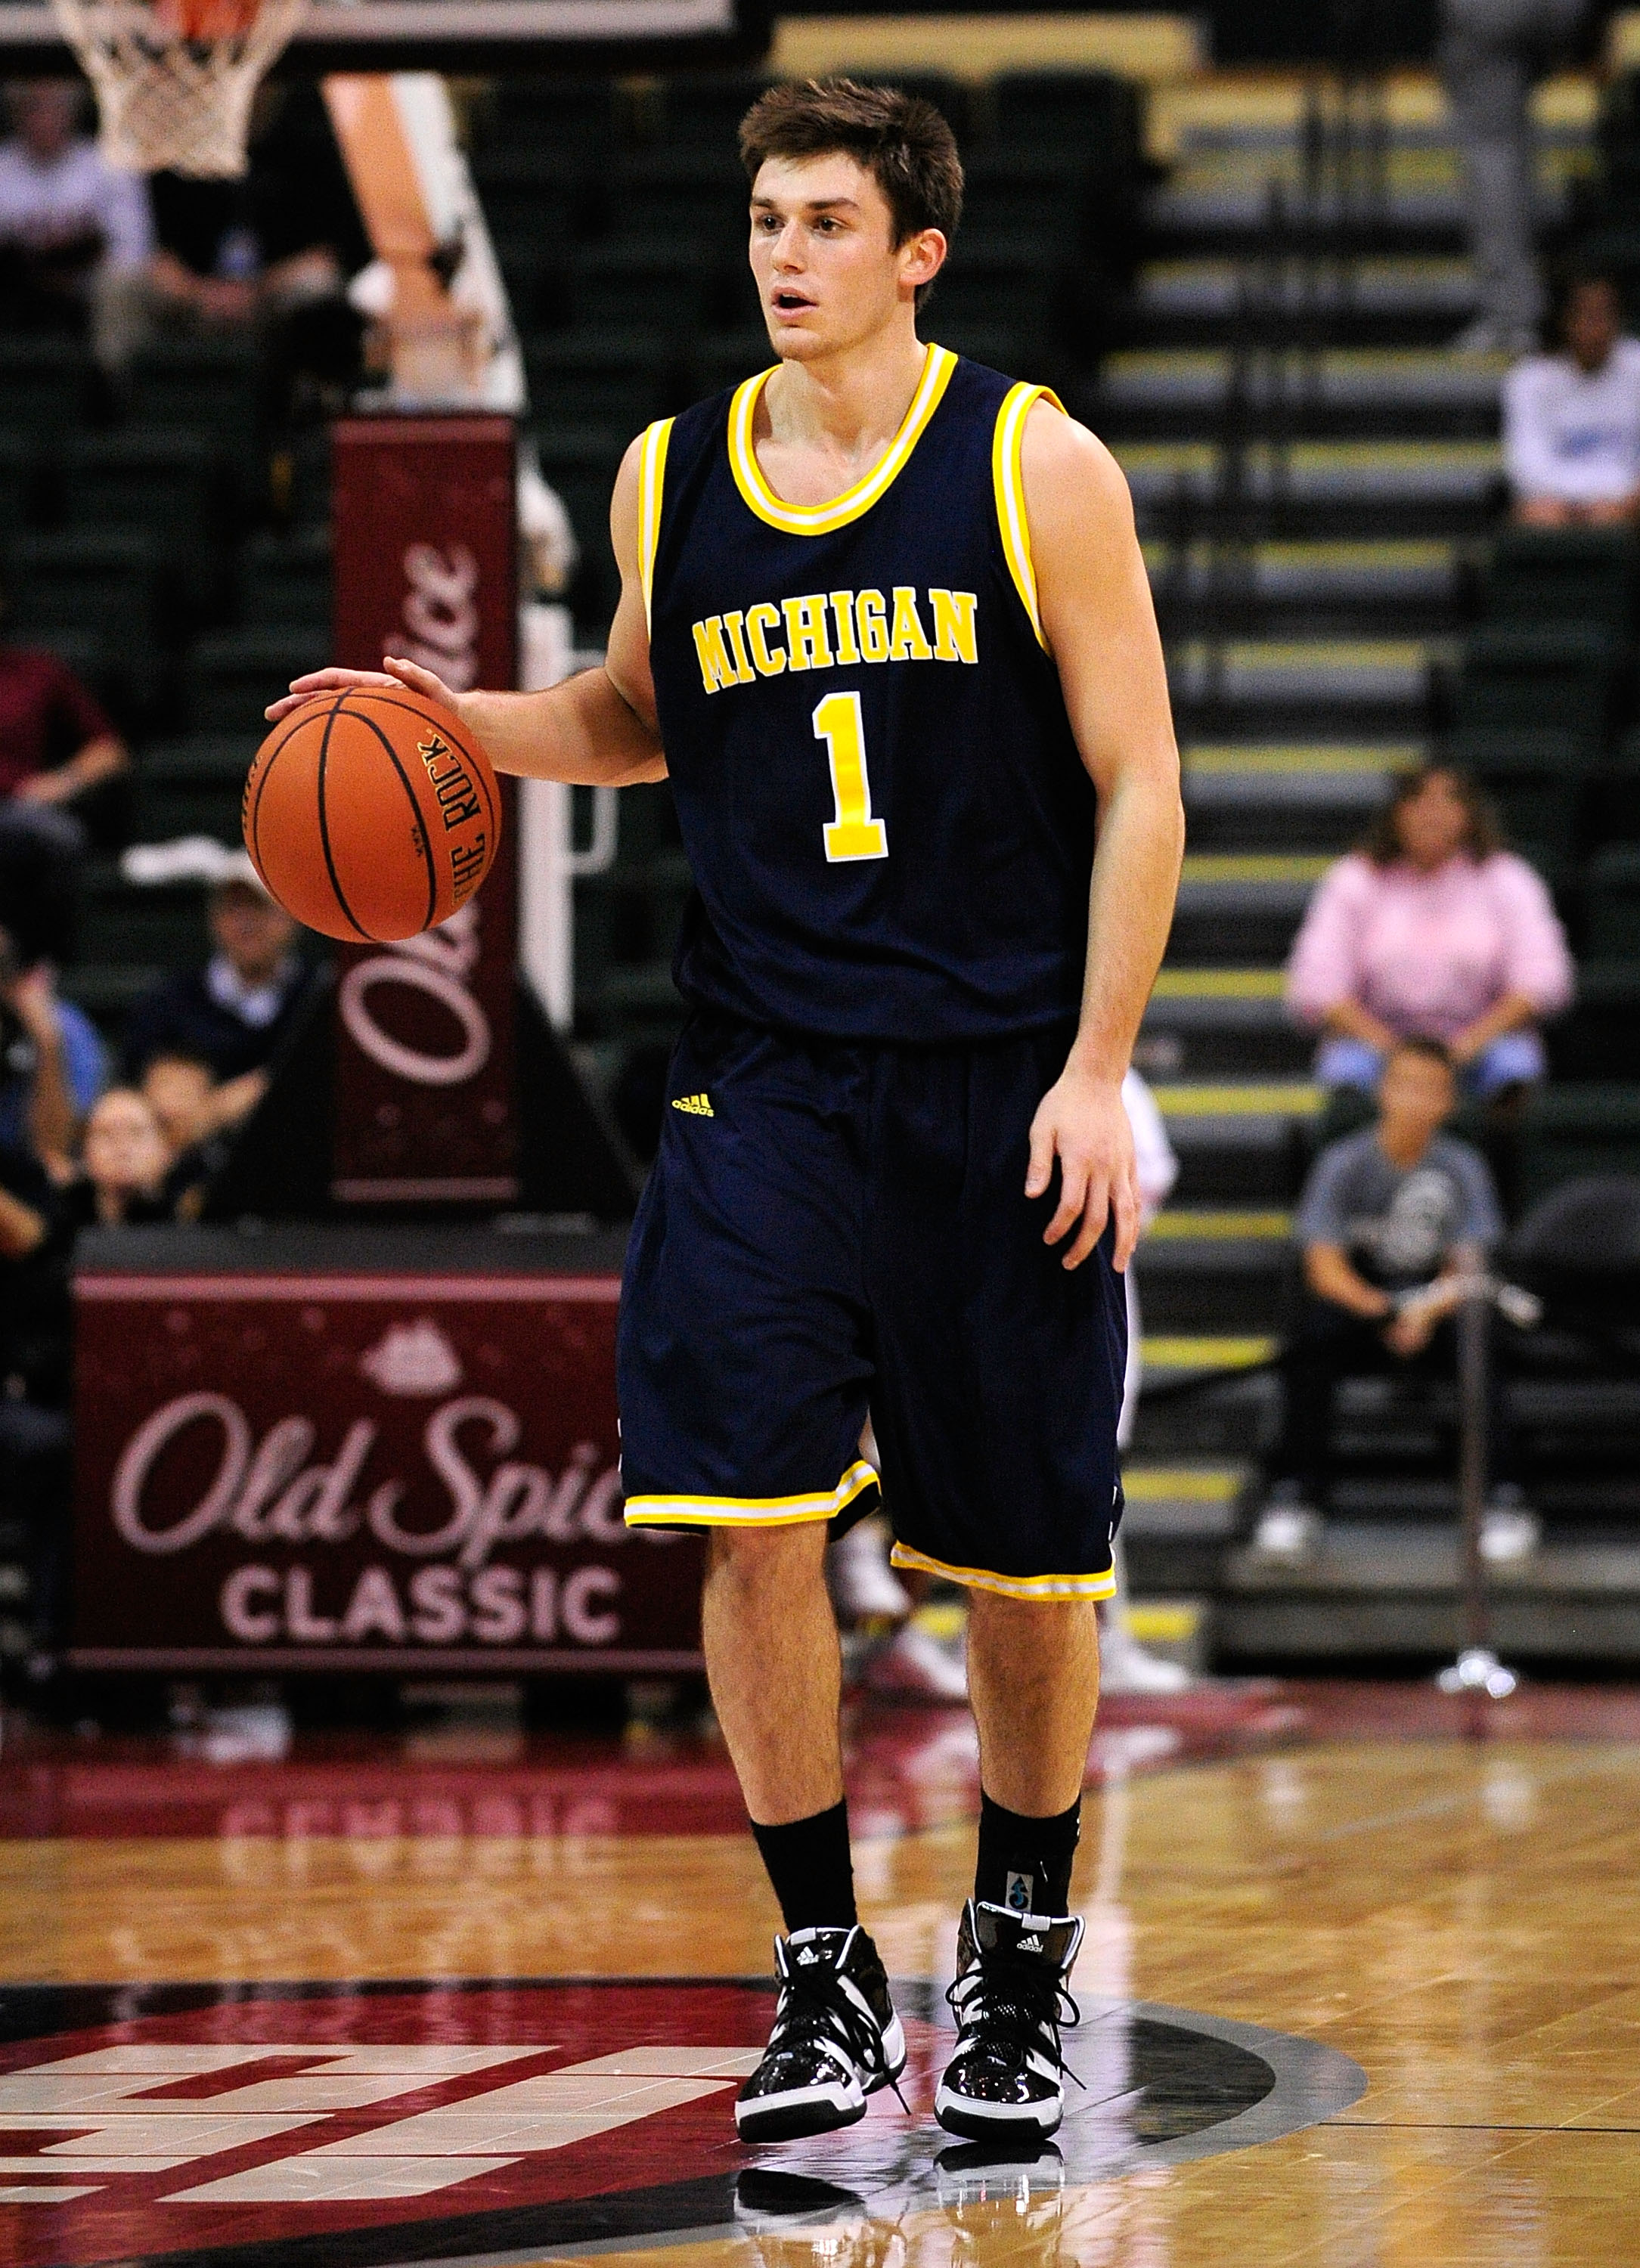 ORLANDO, FL - NOVEMBER 27:  Stu Douglas #1 of the Michigan Wolverines looks to pass against the Marquette Golden Eagles during the Old Spice Classic at Disney's Milk House on November 27, 2009 in Orlando, Florida. Marquette defeated Michigan 79-65.  (Phot